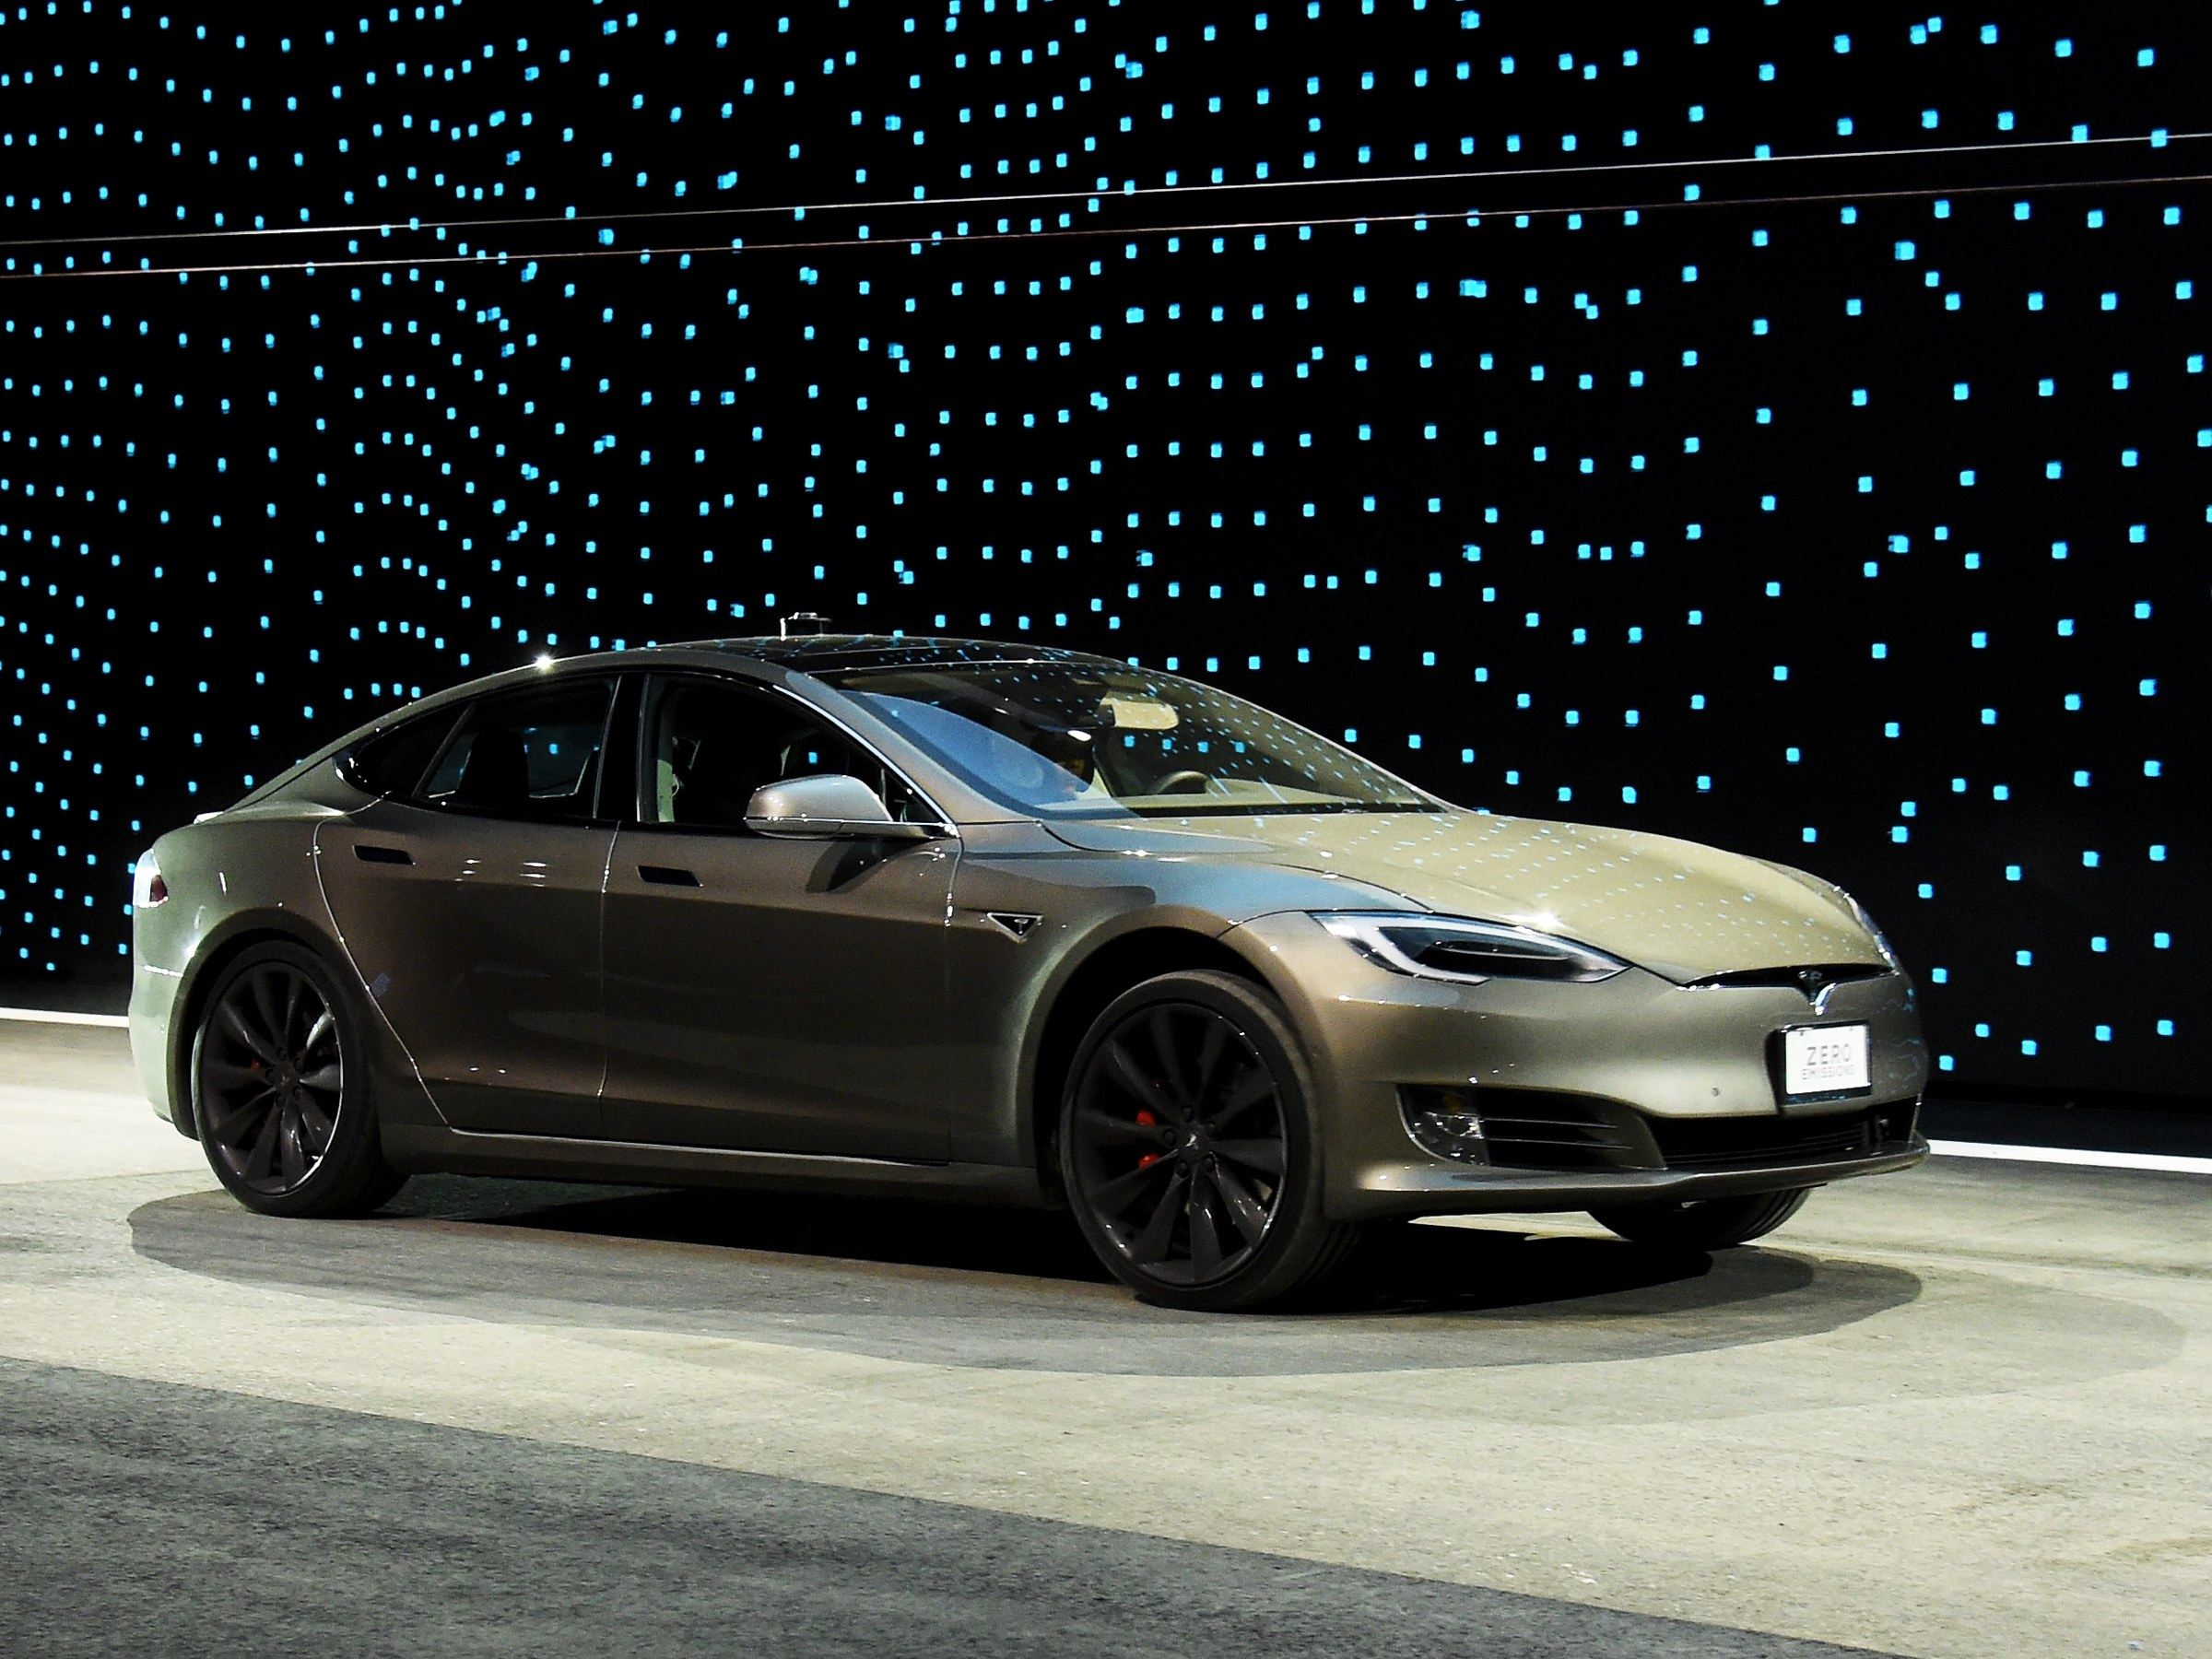 US$600 of gear will let you steal a Tesla in seconds